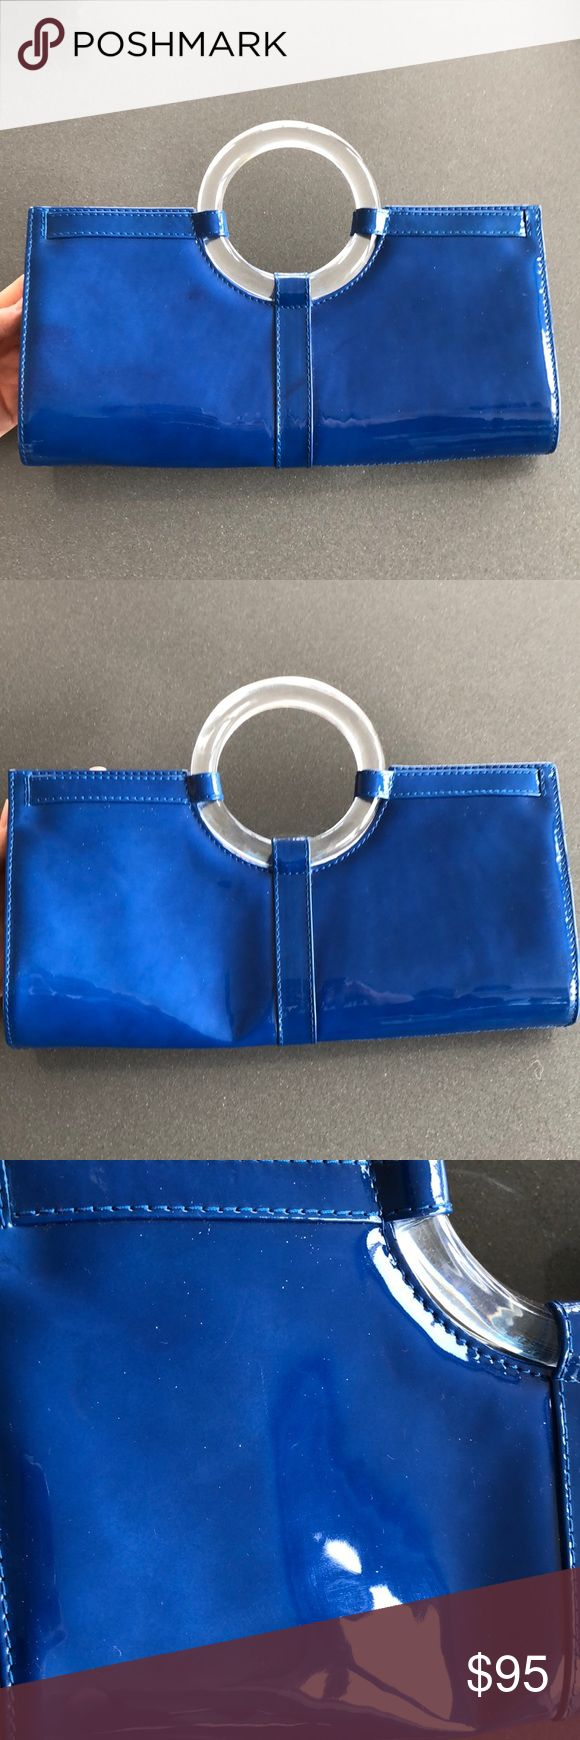 """Stuart Weitzman bag! This bag is amazing! Magnetic closure and funky lucite ring handle. Detachable strap never used and included. Staining in bottom corner from a lipstick. Outside of bag has a couple spots that show """"staining"""". Hard to photo but see up close pictures. Not too noticeable in my opinion. This bag perfectly matches a pair of SW shoes I have listed as well! 11.5"""" x 6"""". Bag is slightly dented right now probably from something sitting on it in the closet but with stuff in it the…"""